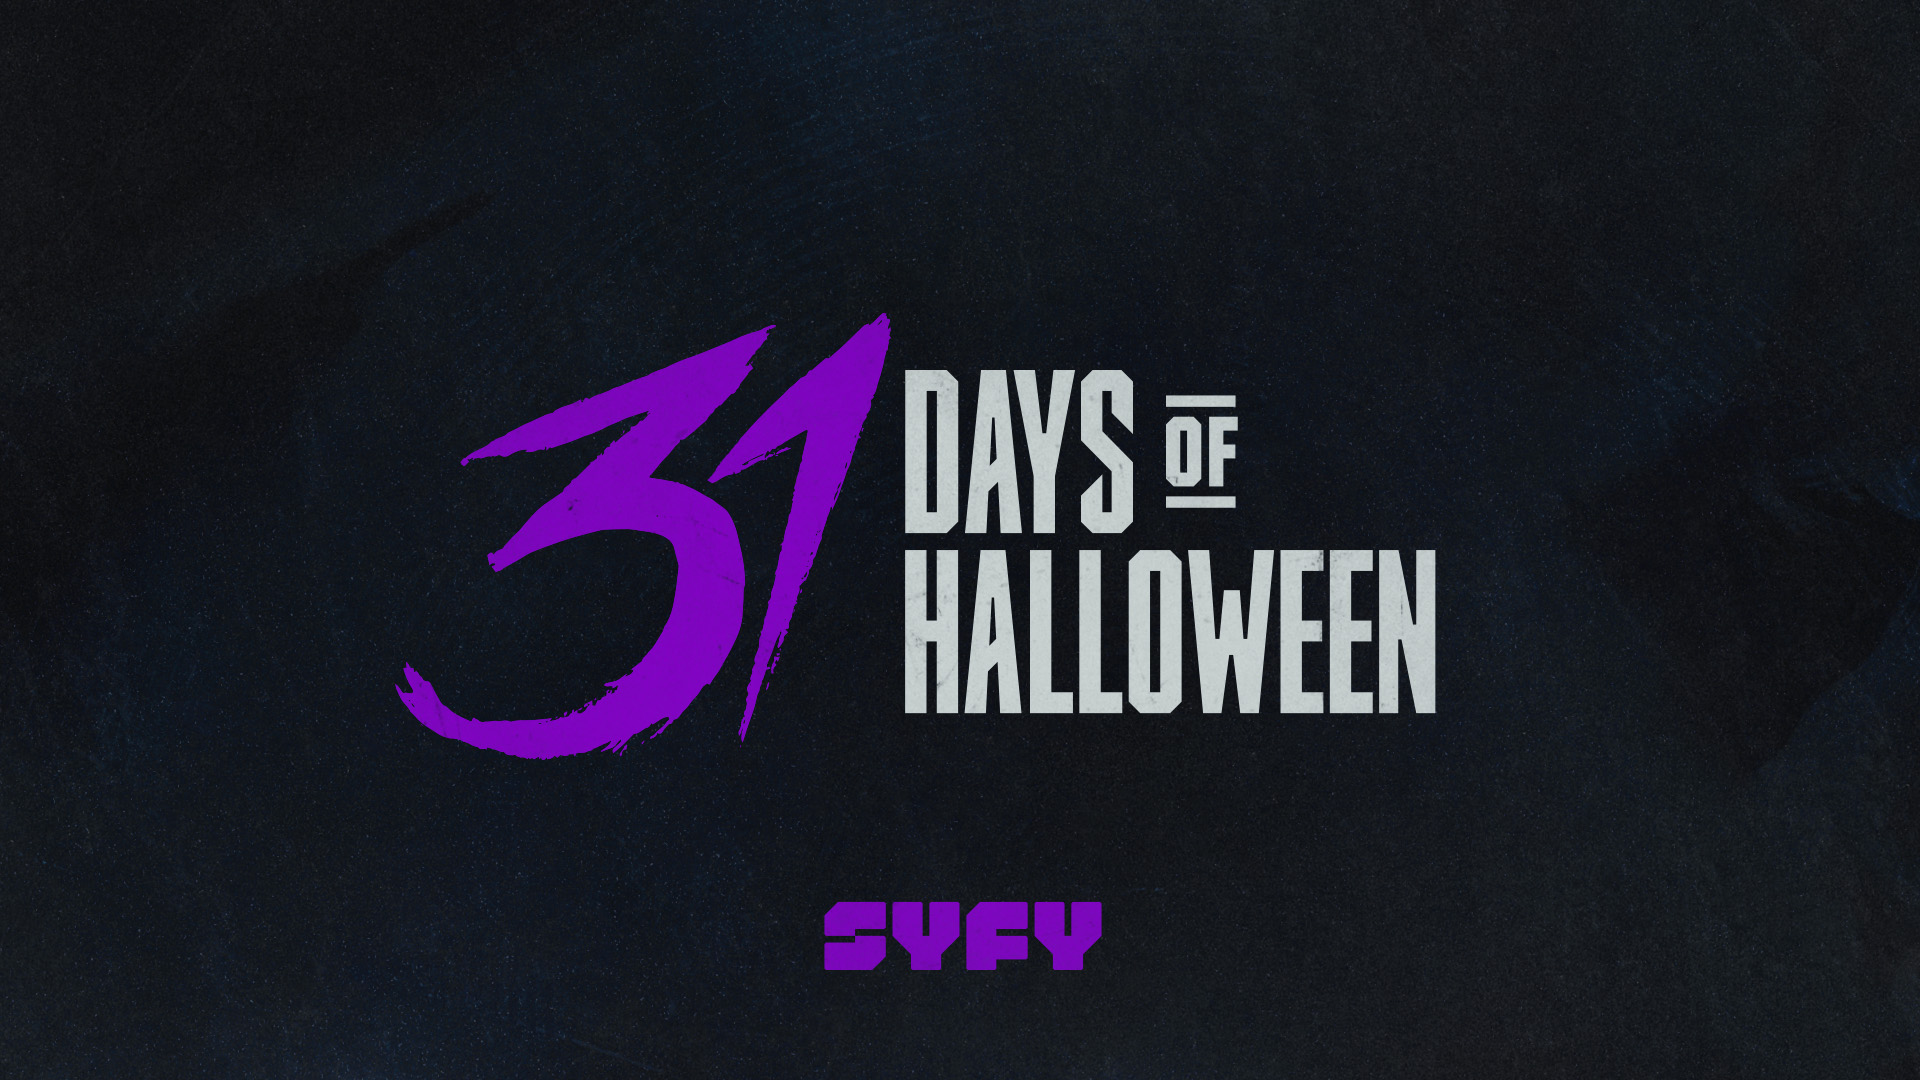 Syfy Shows 2020 31 Days Of Halloween SYFY's Halloween Lineup Includes Themed Movie Marathons Throughout